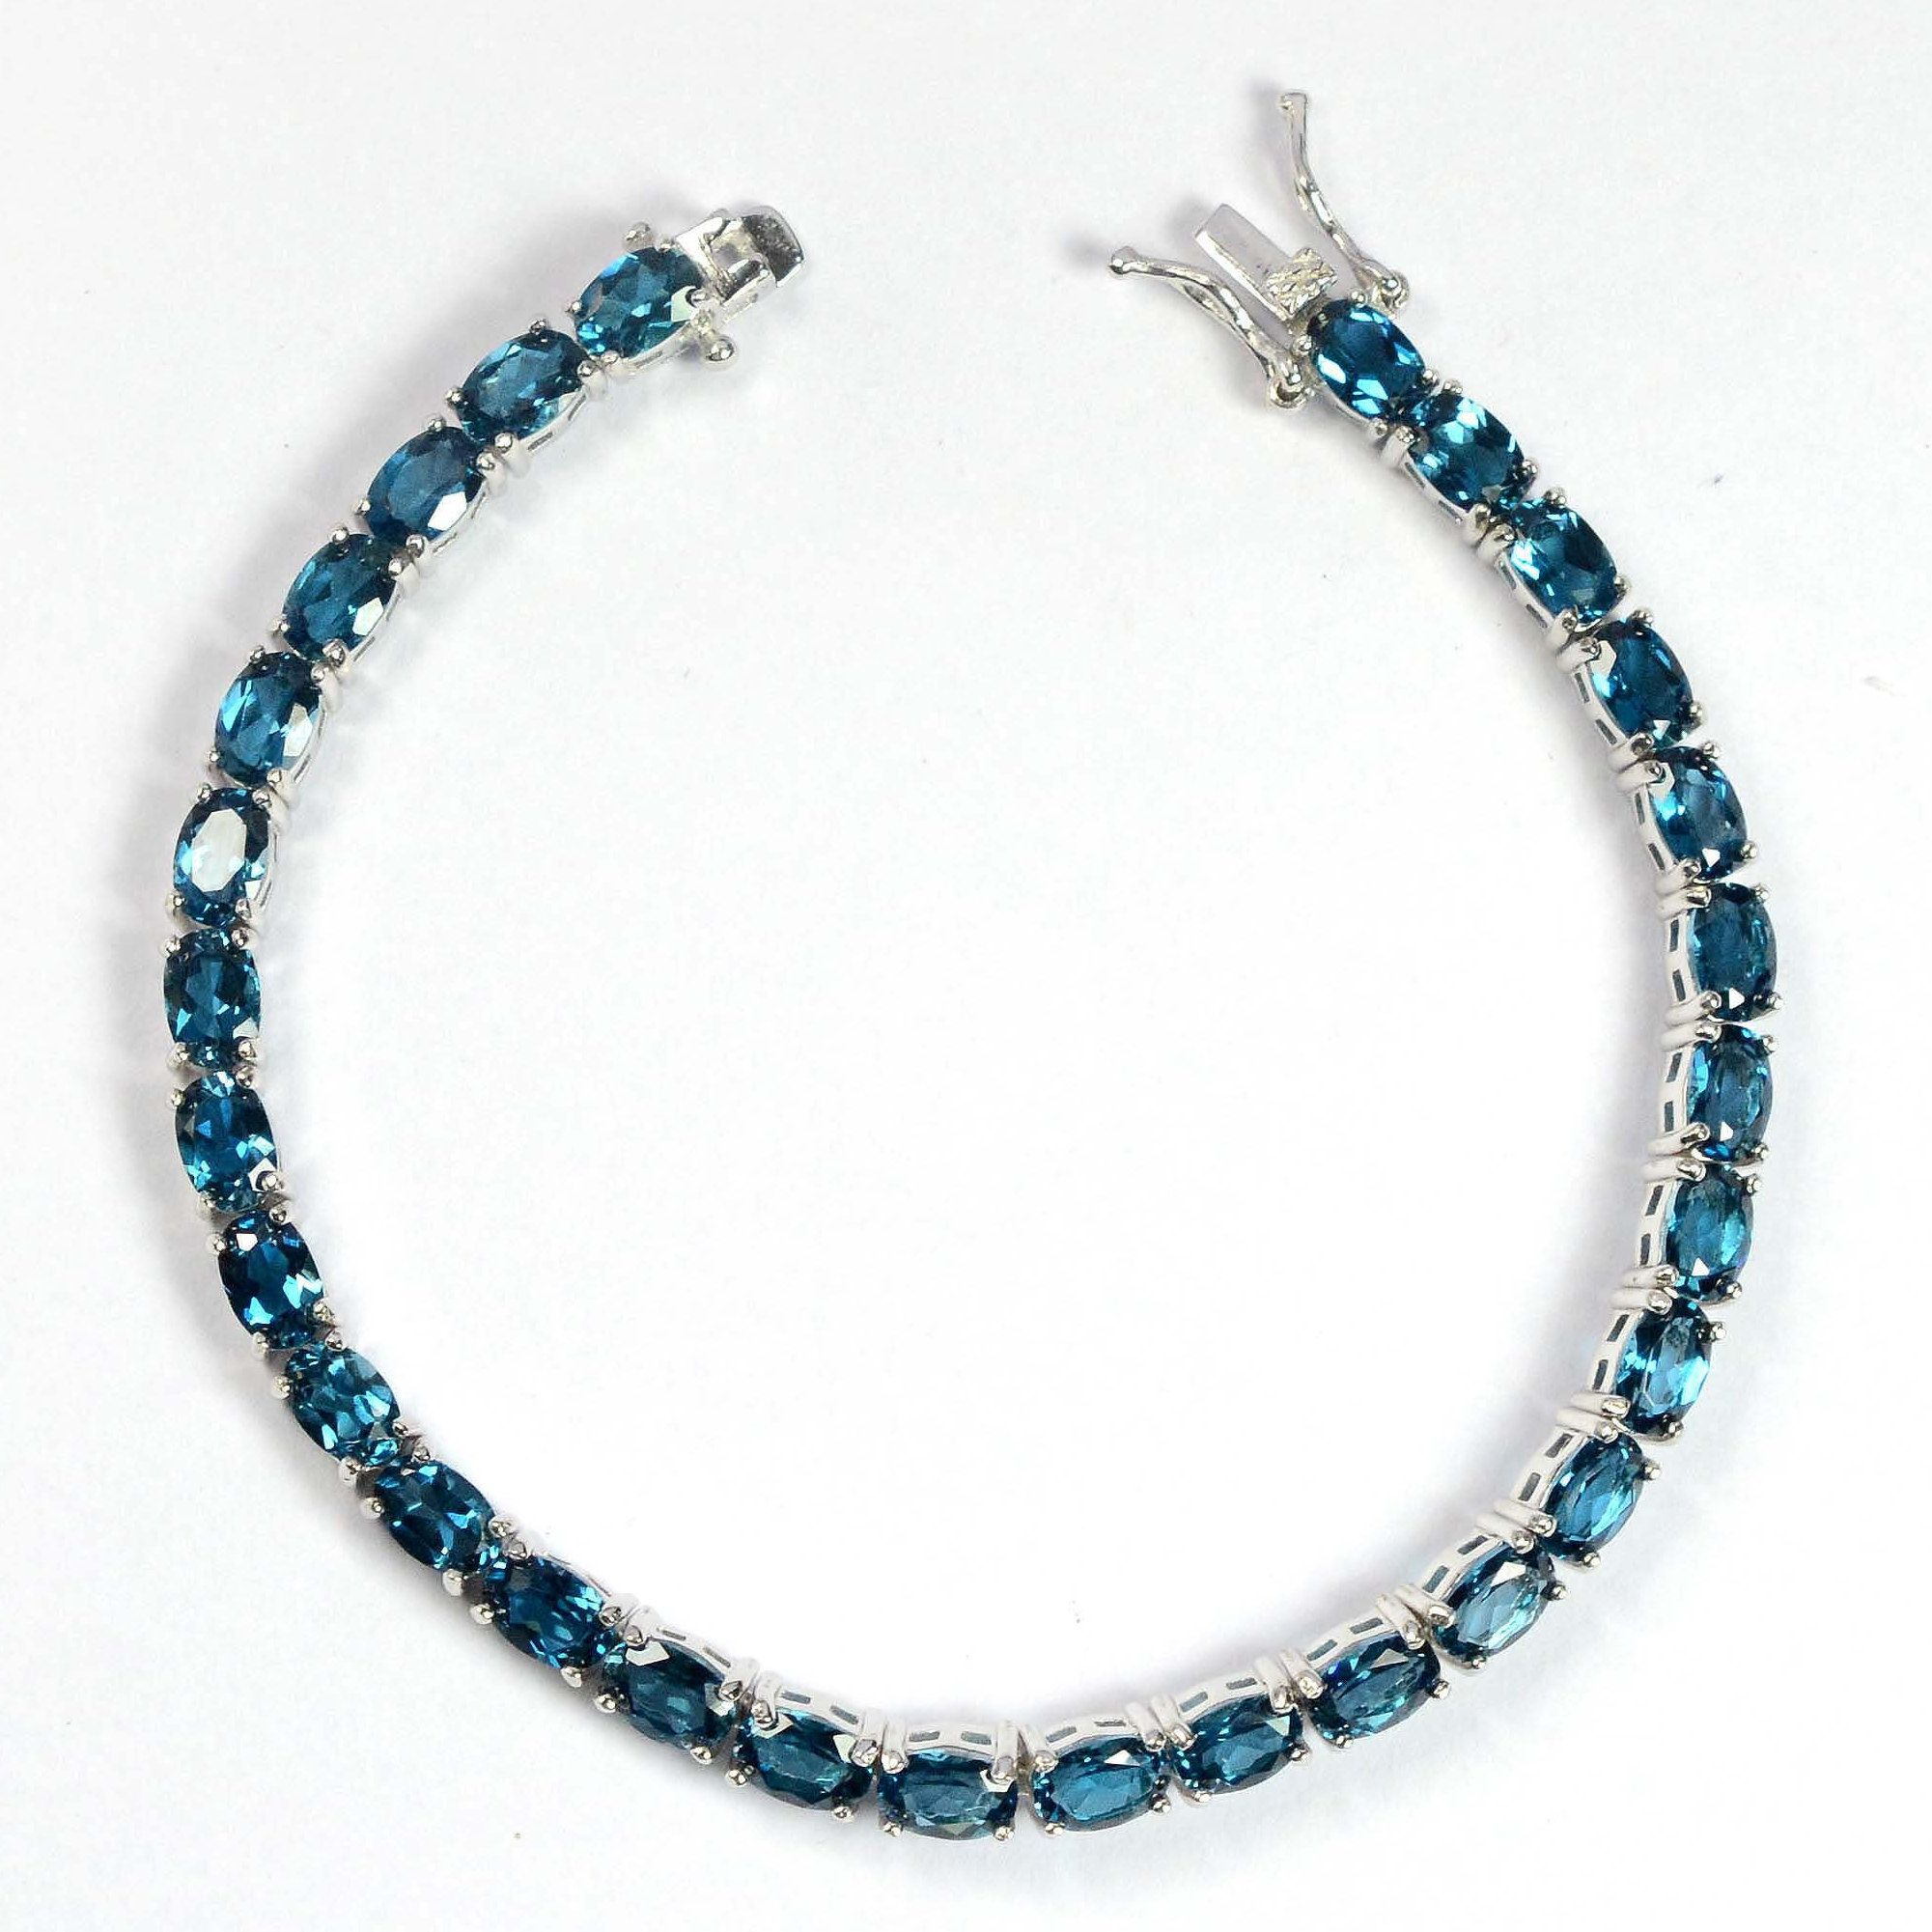 Wedding Gift for her Tennis Bracelet Natural London Topaz Silver Jewelry Handmade Silver Bracelet Natural Blue Topaz Silver Bracelet